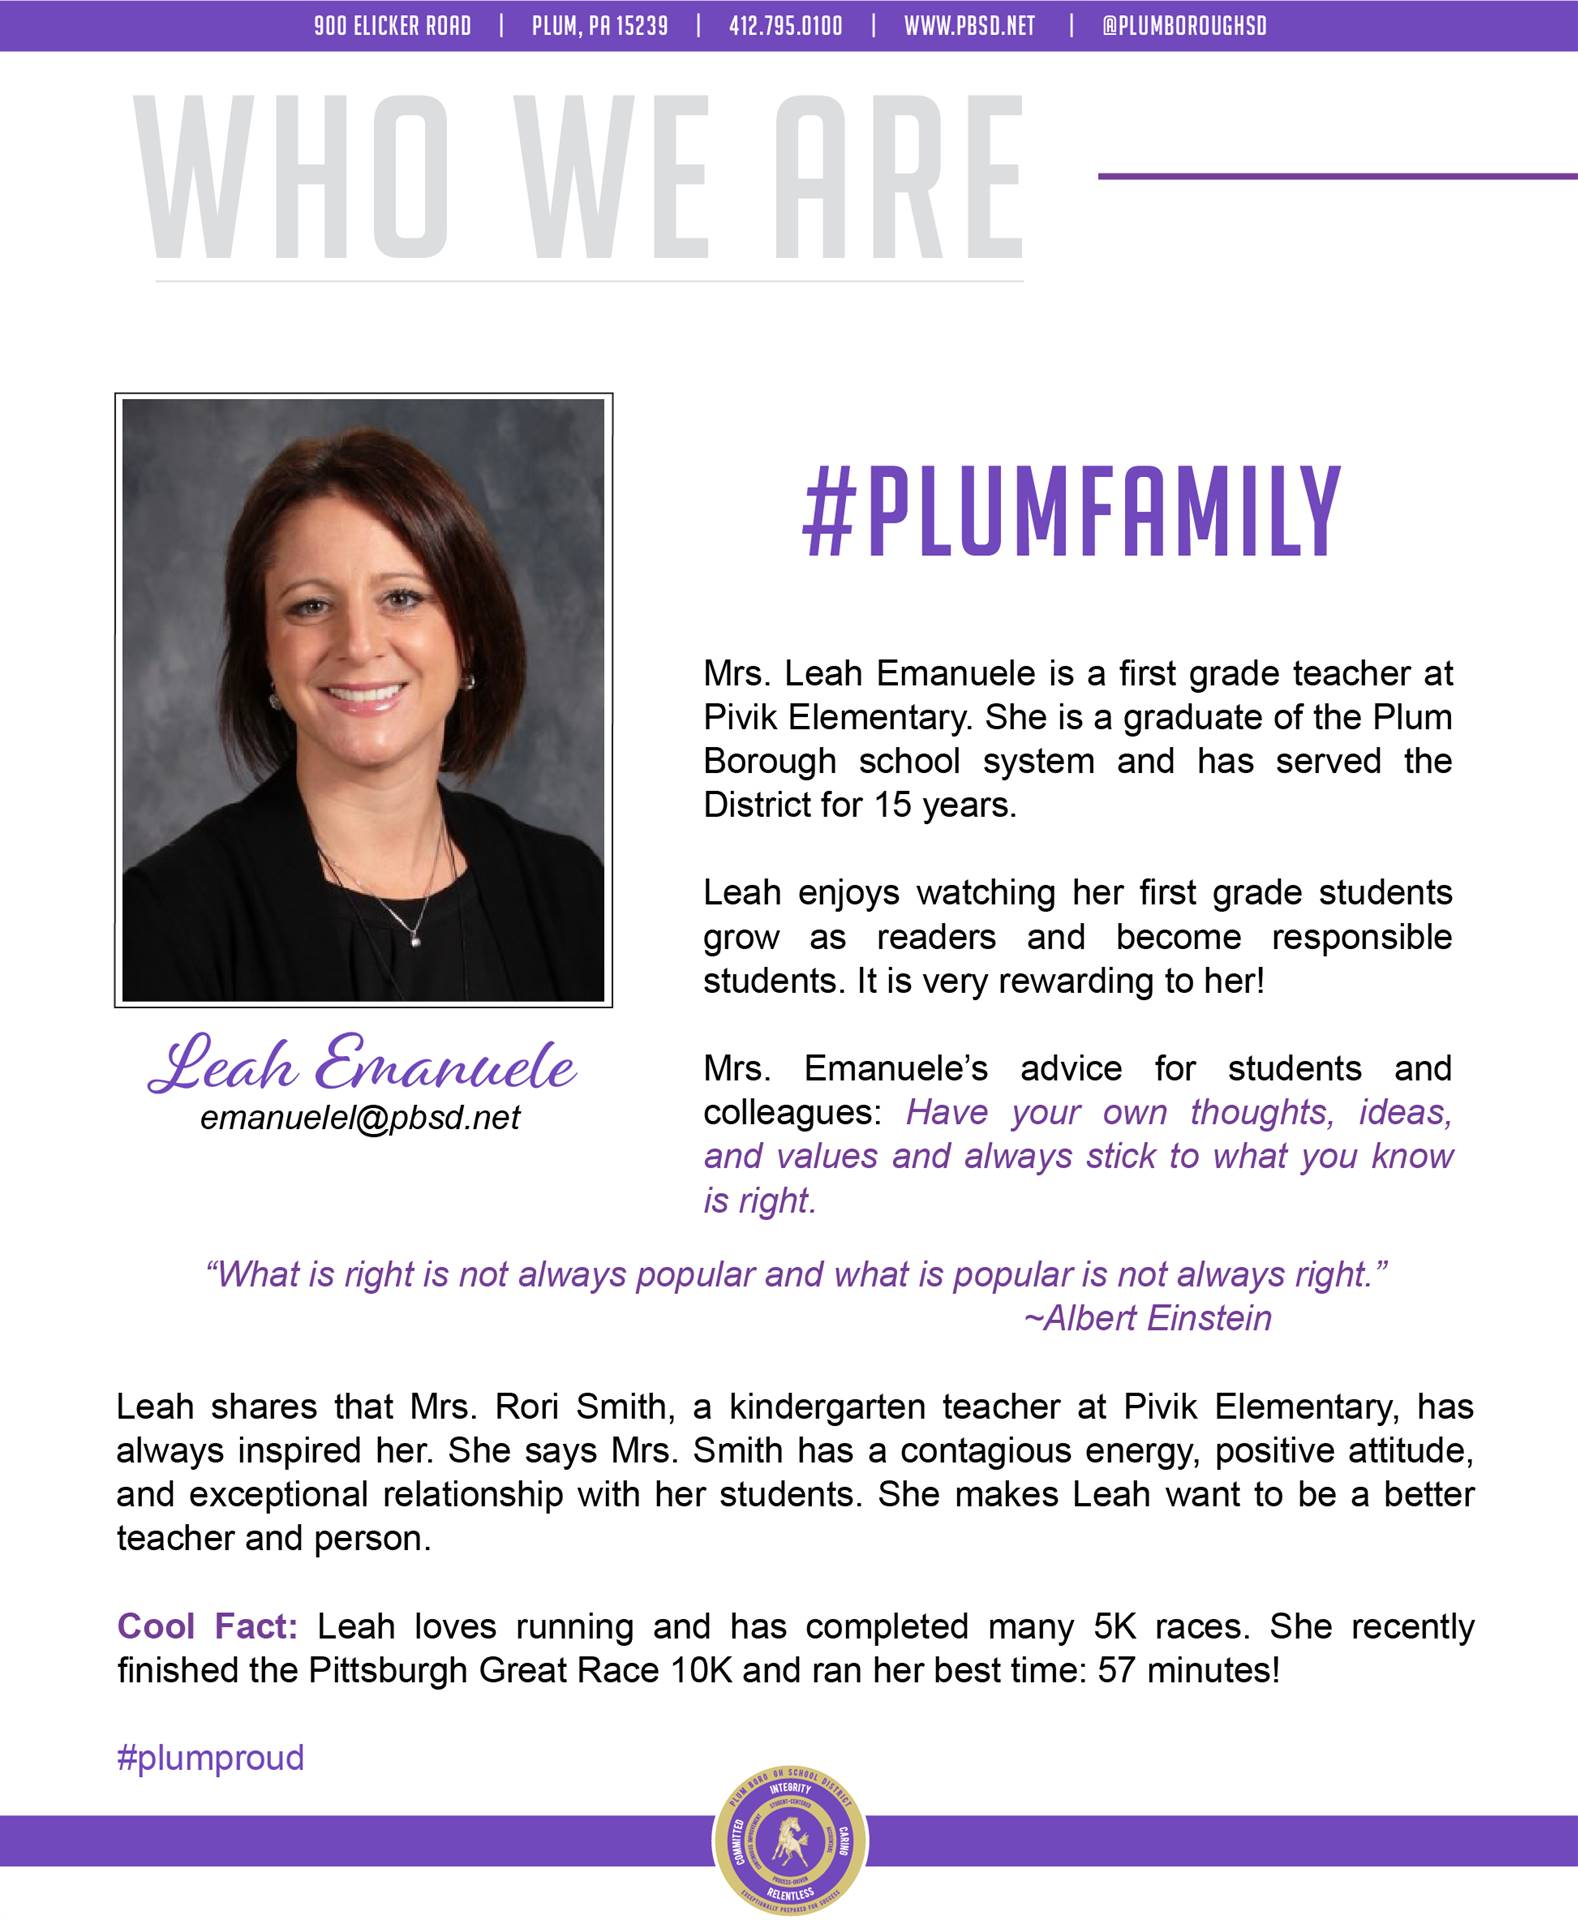 Who We Are Wednesday features Leah Emanuele.